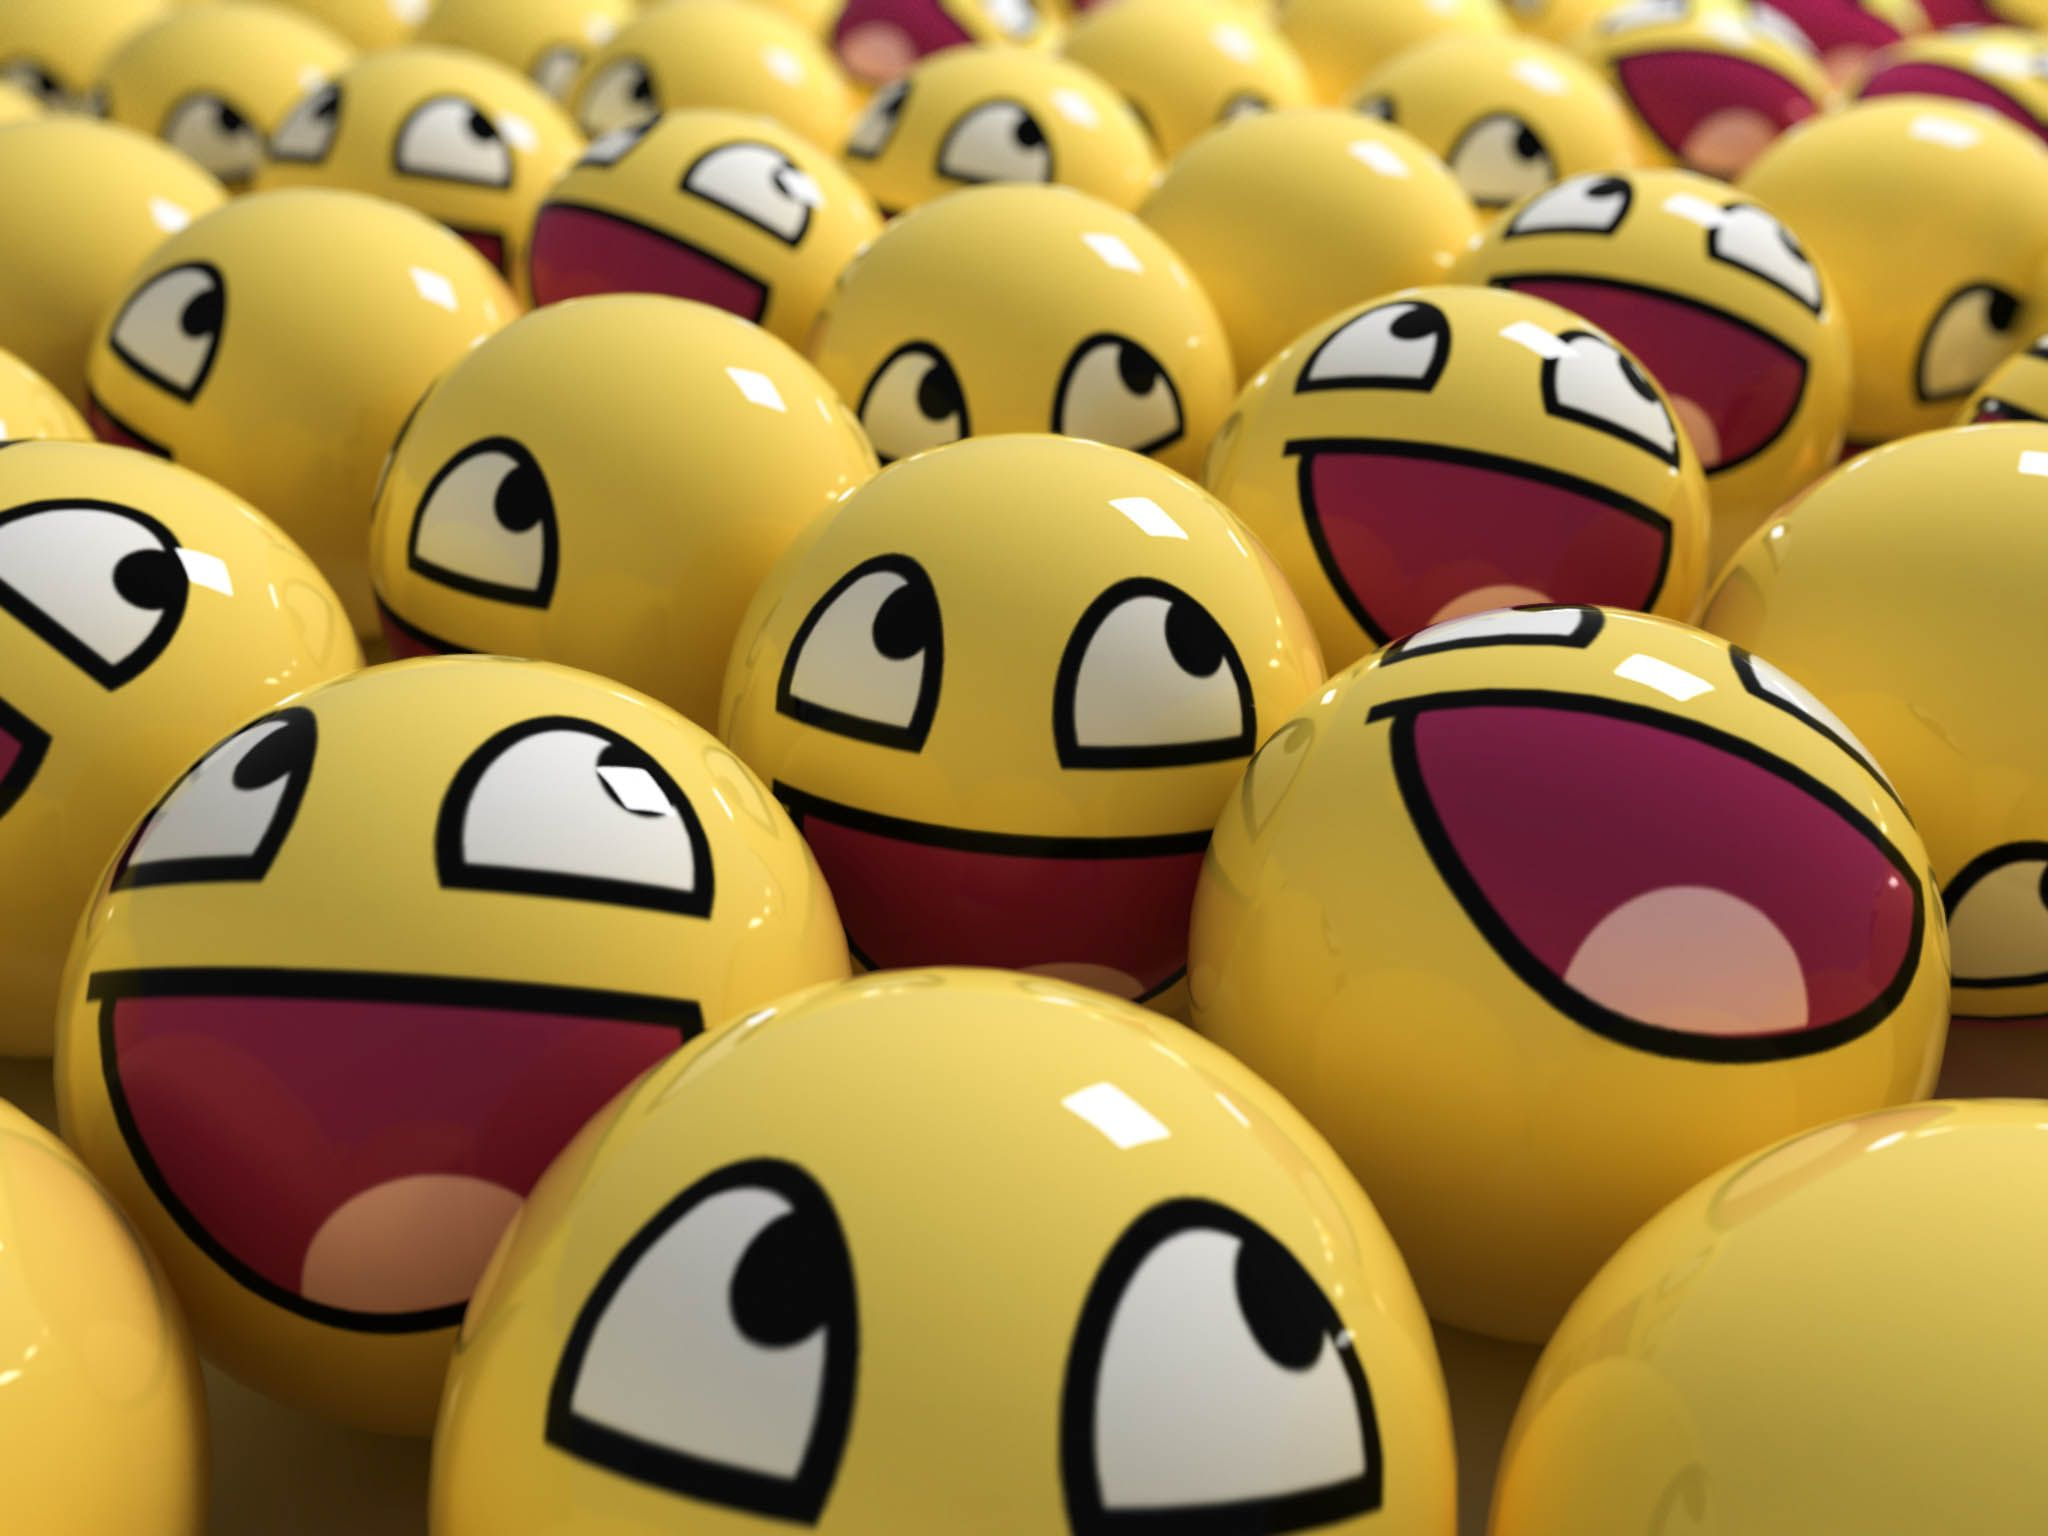 Download smiley face wallpaper hd wallpaper - Smiley Beautiful Hd Wallpapers Smiley Wallpapers And Backgrounds And Download